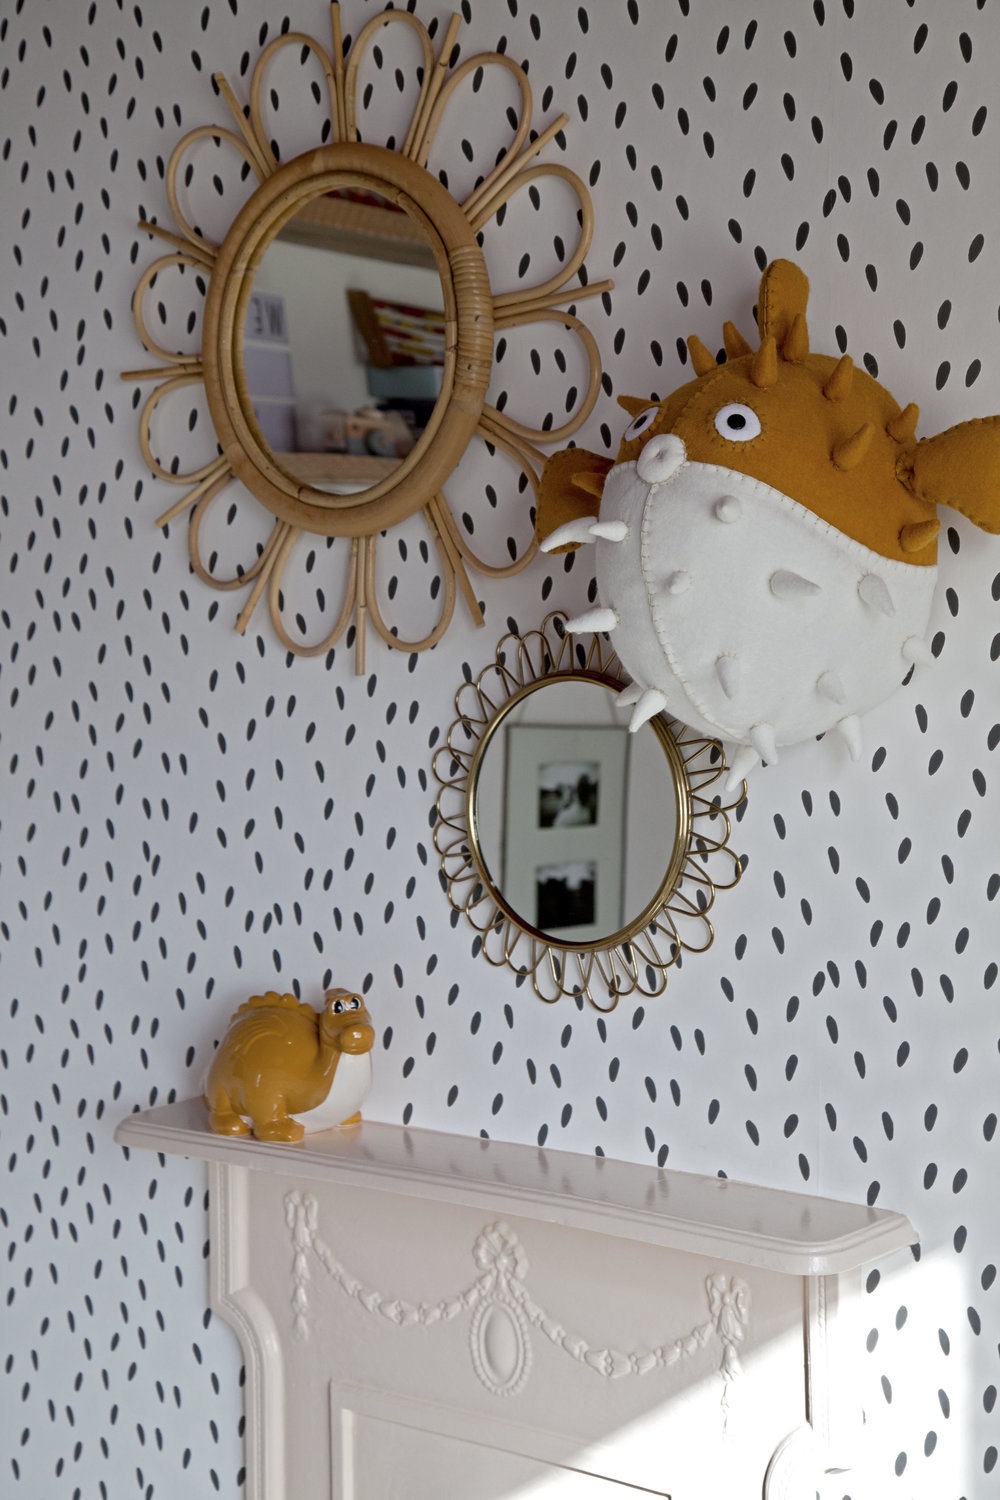 Wallpaper- 'Ella' by   Sandburg Wallpaper   ...... Cane mirror La Redoute